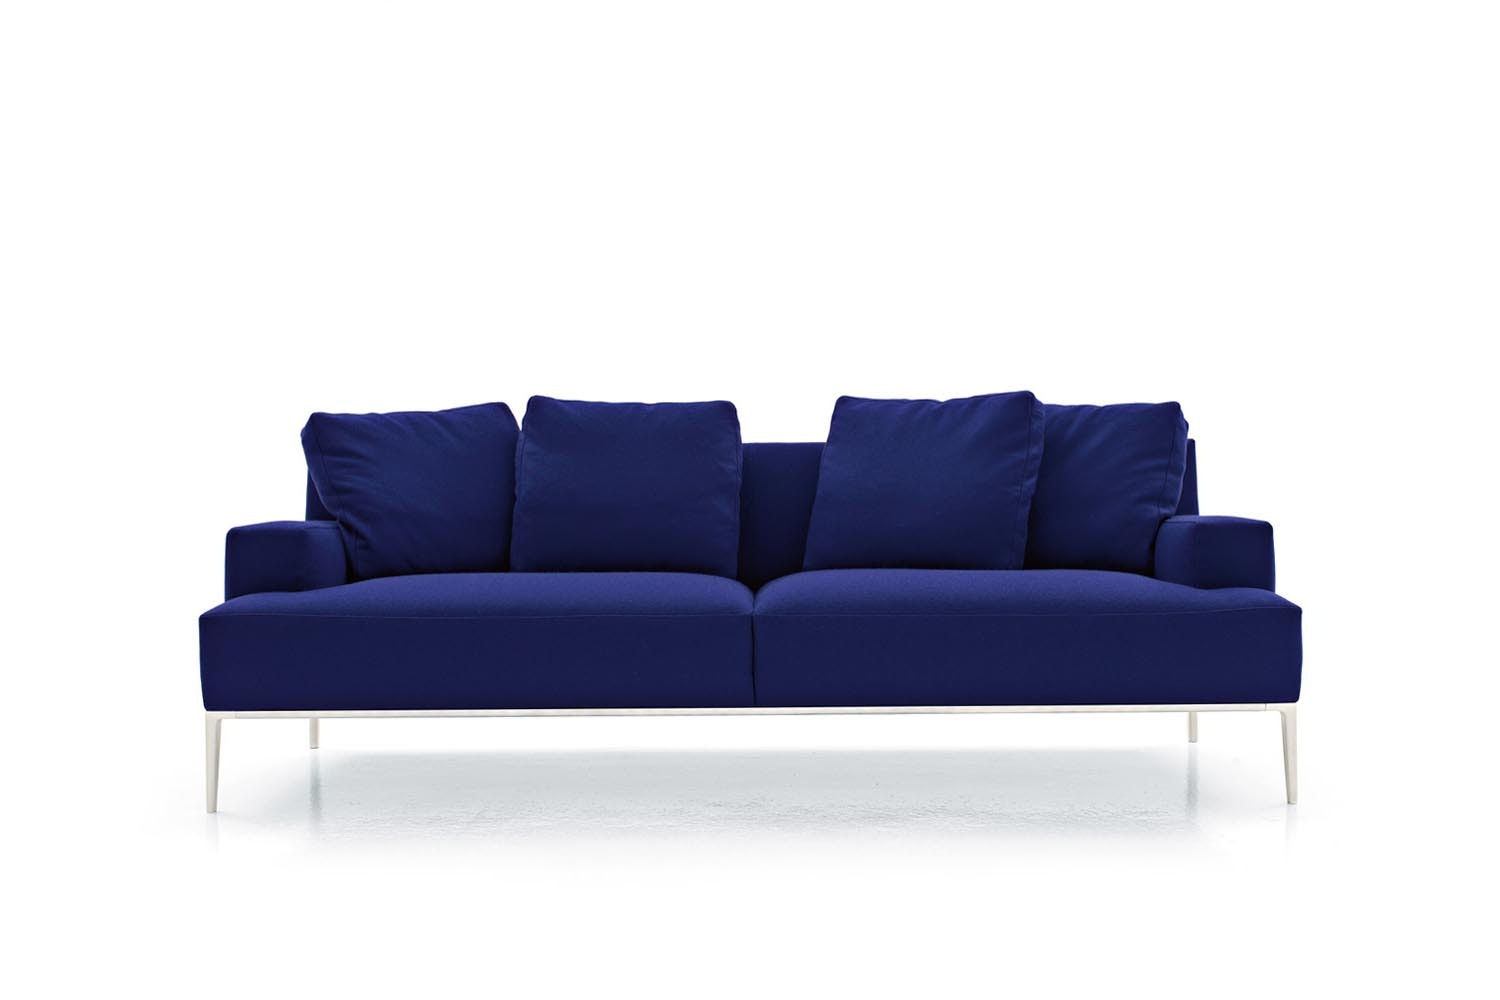 Jean Sofa by Antonio Citterio for B&B Italia